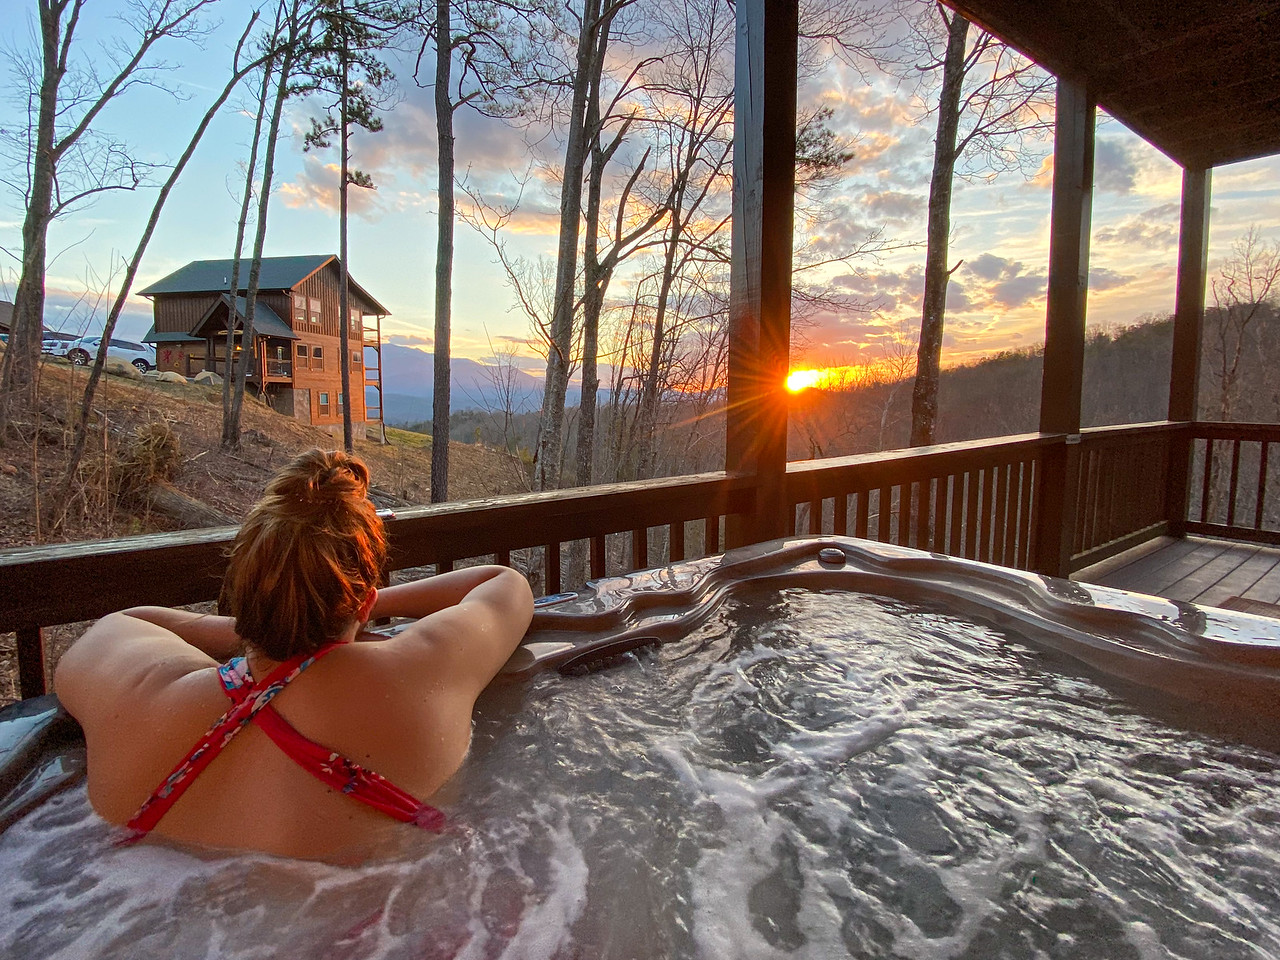 Hot tub sunsets in the Smokies